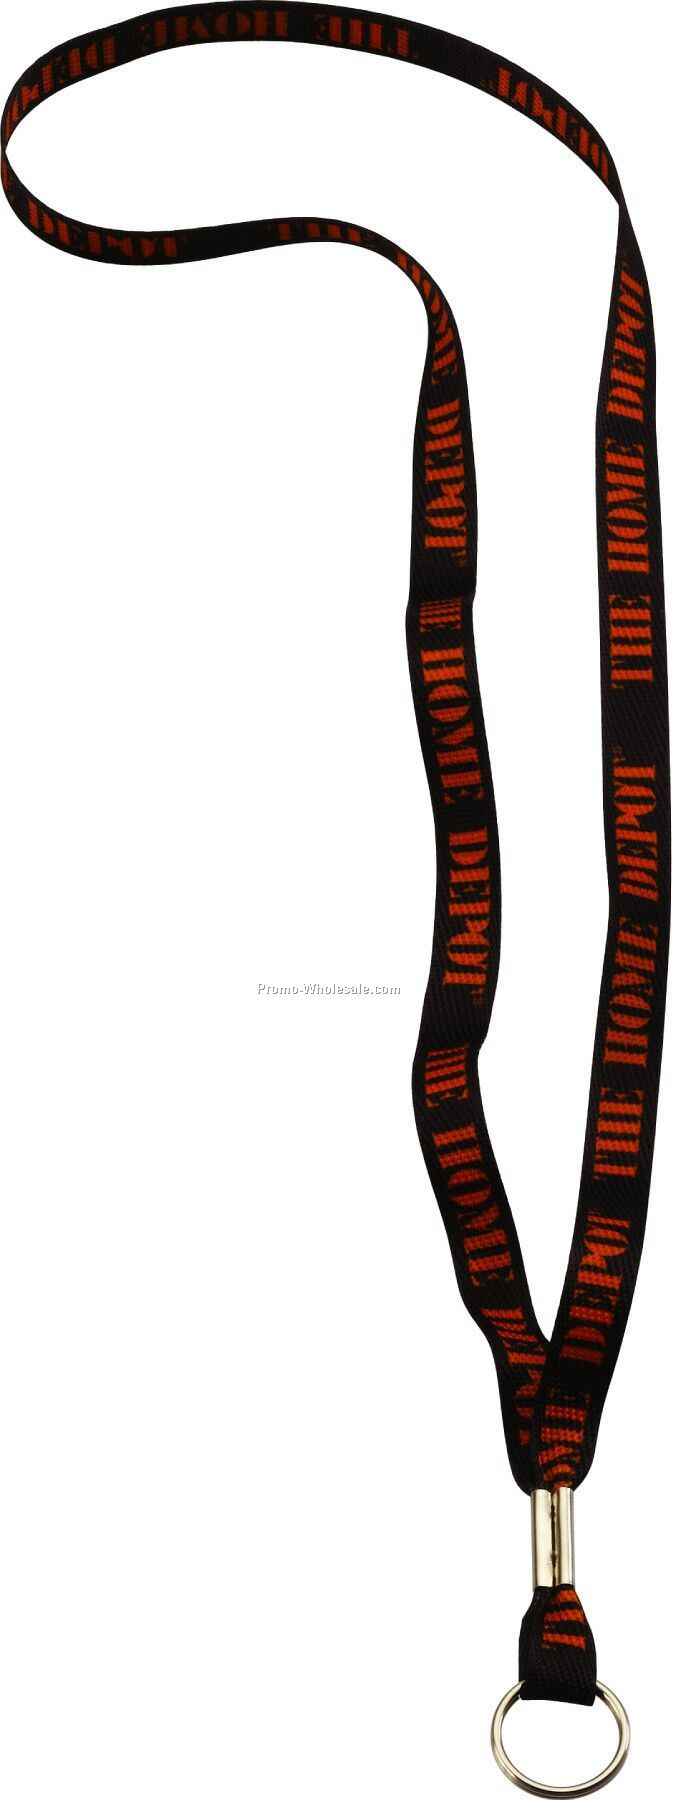 "1/2"" Waffle Weave Dye Sublimated Lanyard W/ Metal Crimp & Metal Split Ring"